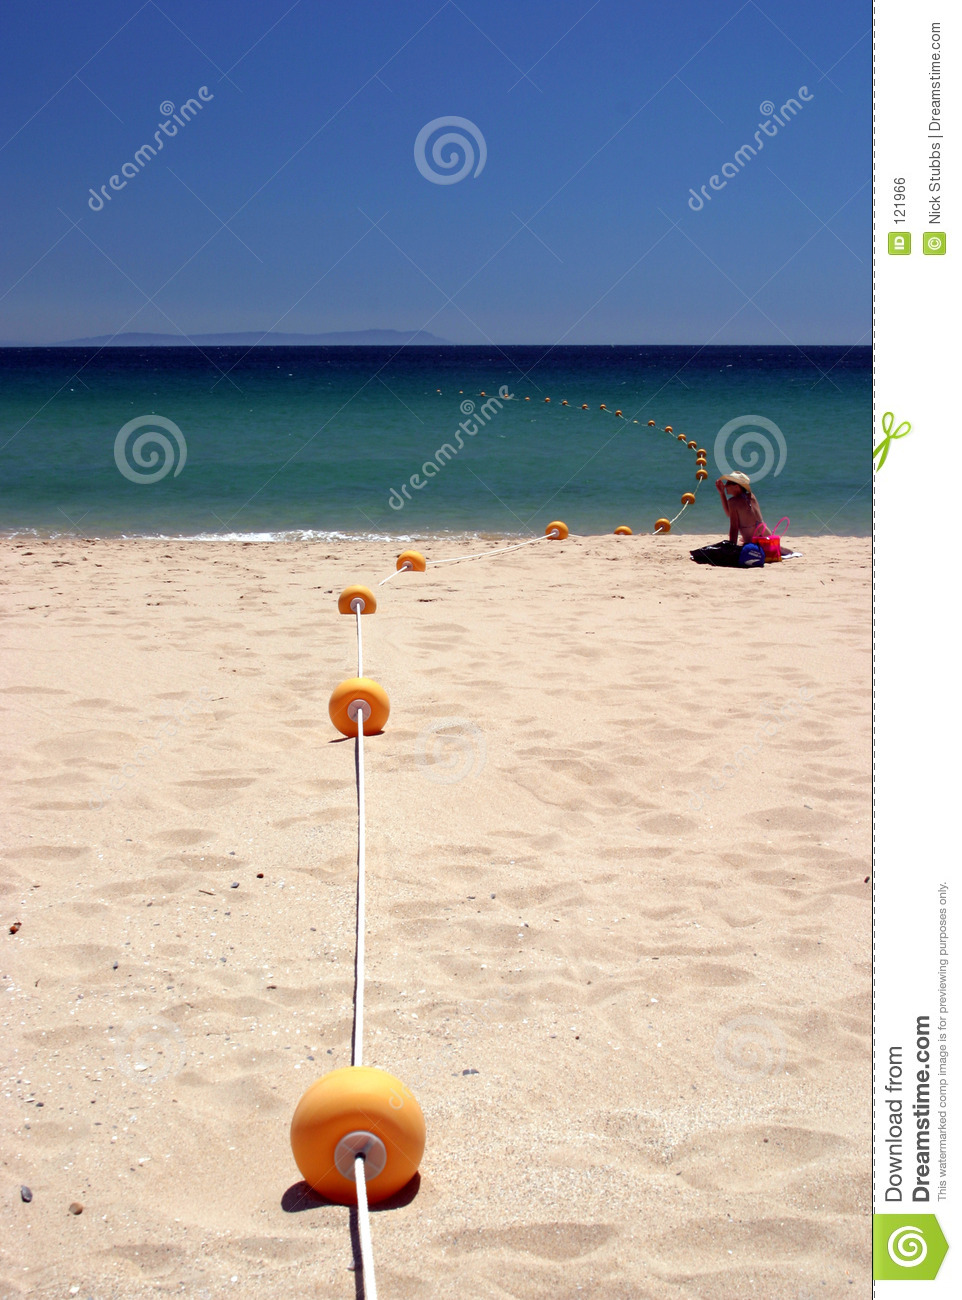 Beach blue calm deserted hot next sea sunny to white woman